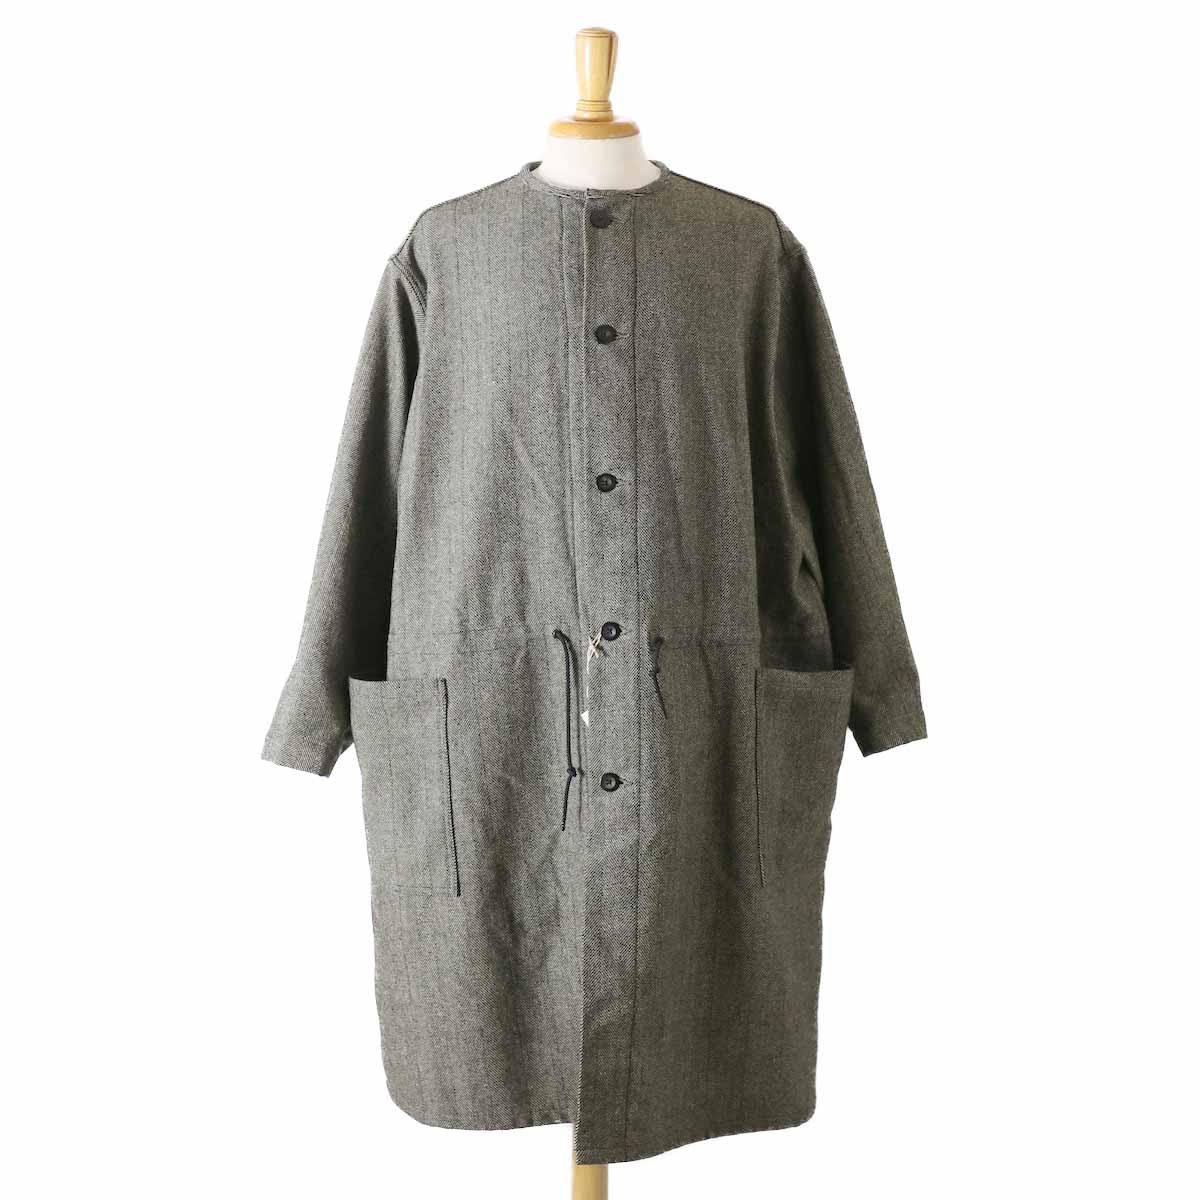 orSlow / Cotton Shell No Collar Coat -Melton Wool Herringbone Twill(GRAY)